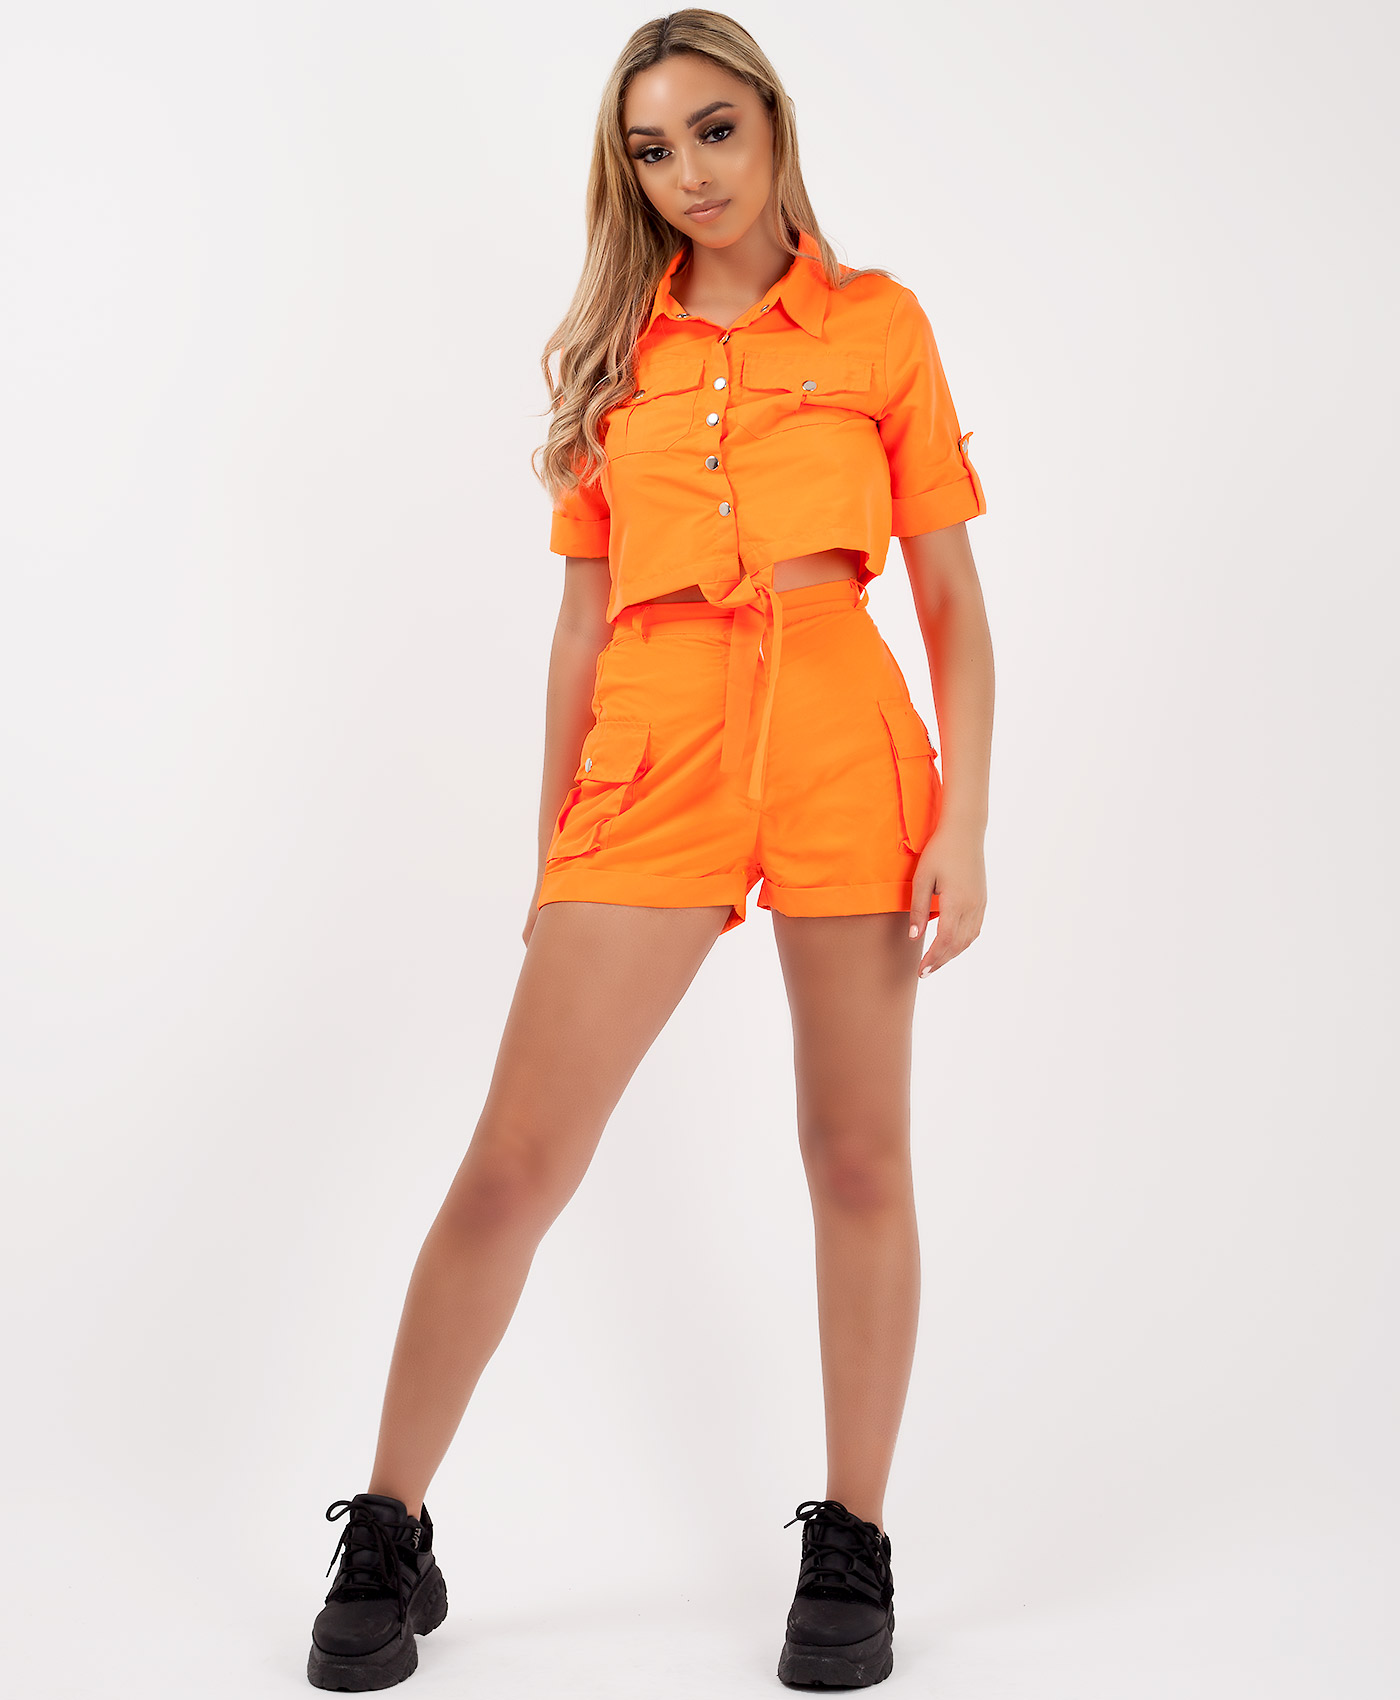 Womens Summer Tied Front Crop Top Hot Pants Shorts Ladies Co-Ord Set Q